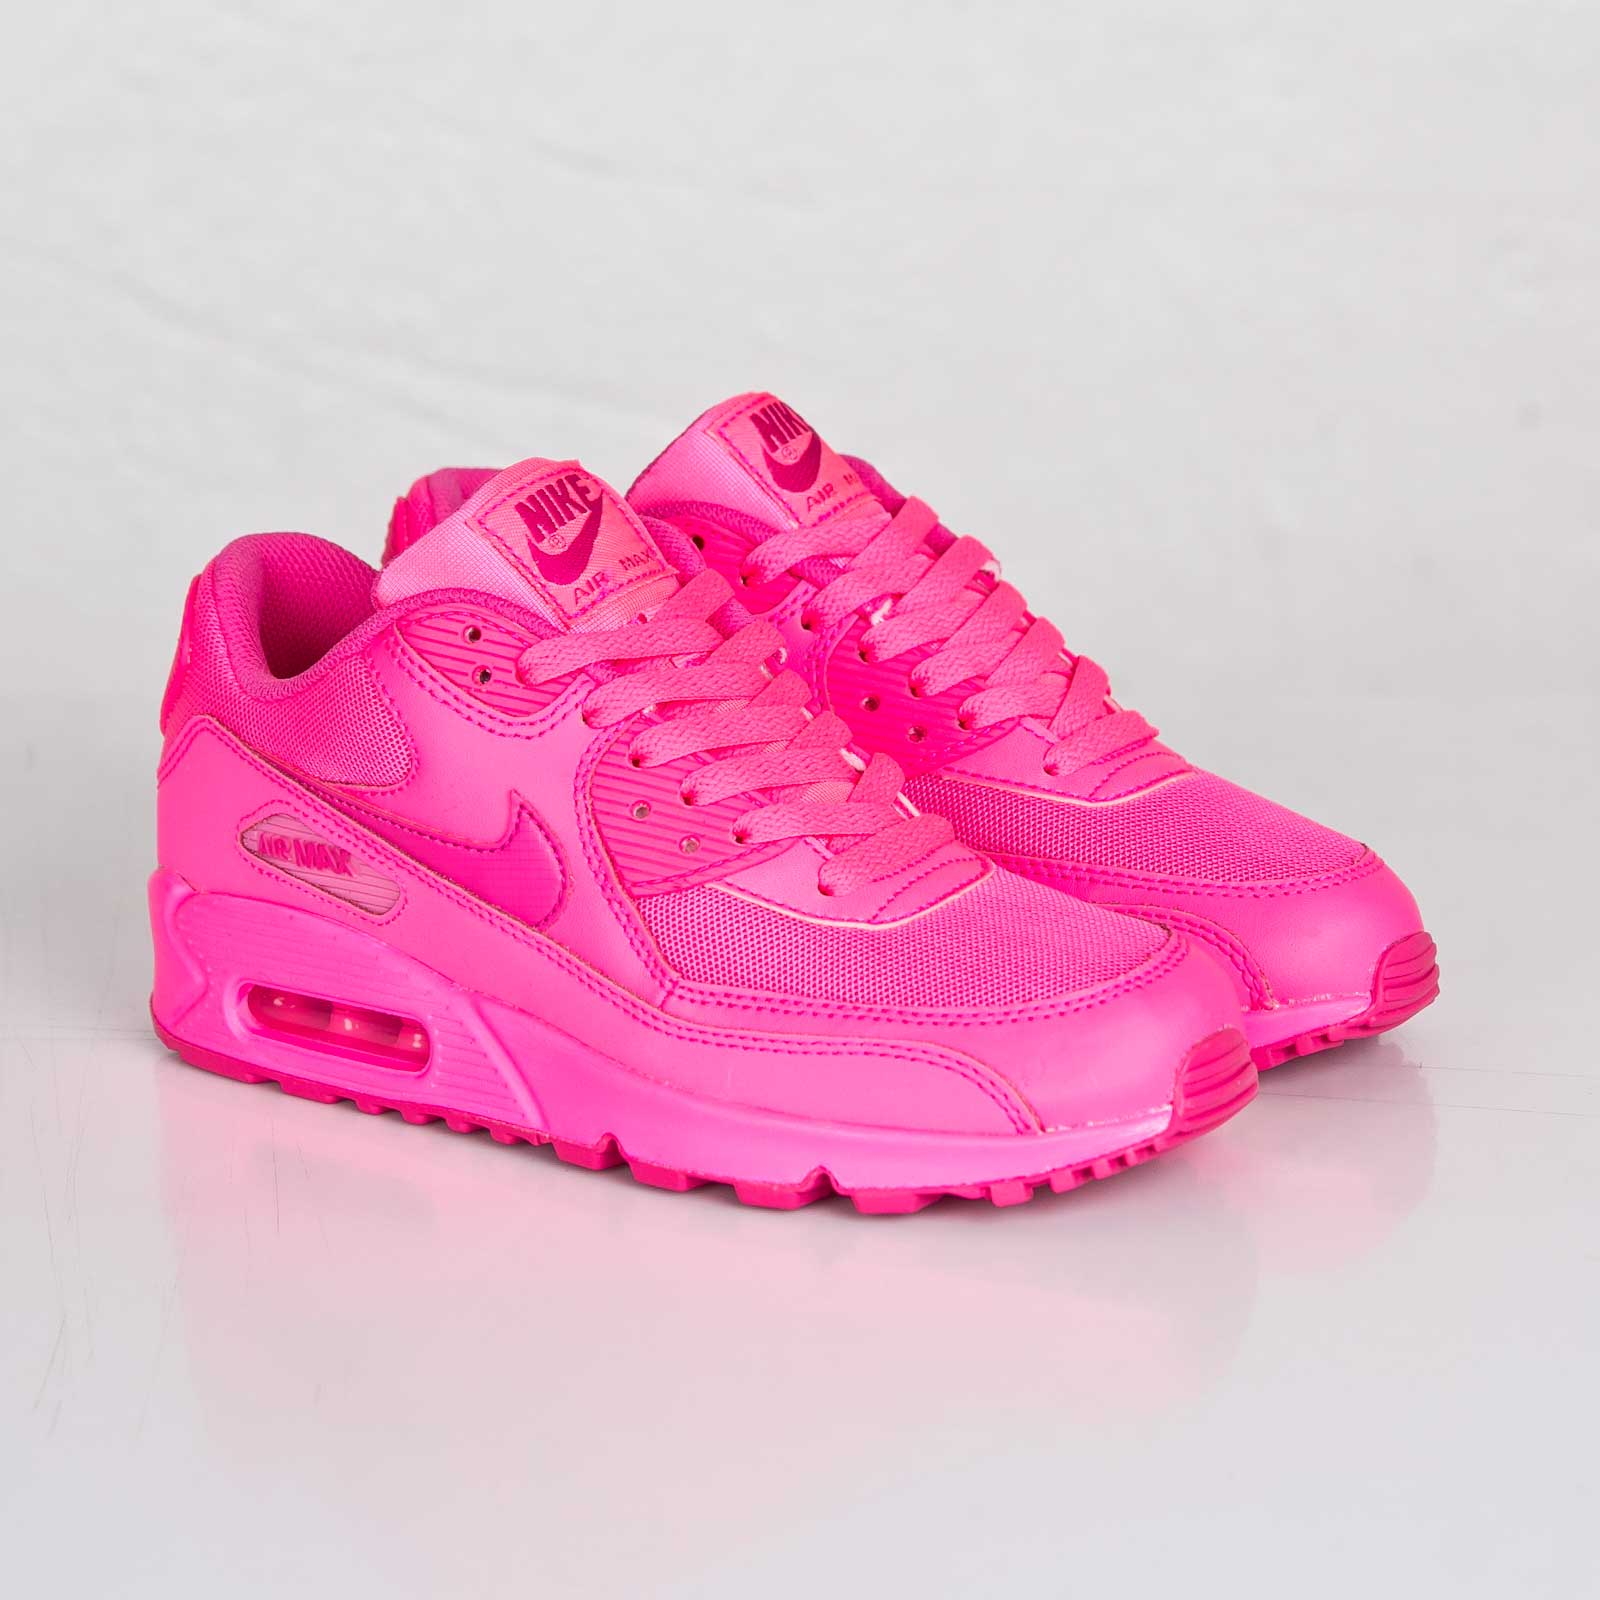 buy popular b6798 c2913 nike air max 90 2007 gs femme rose